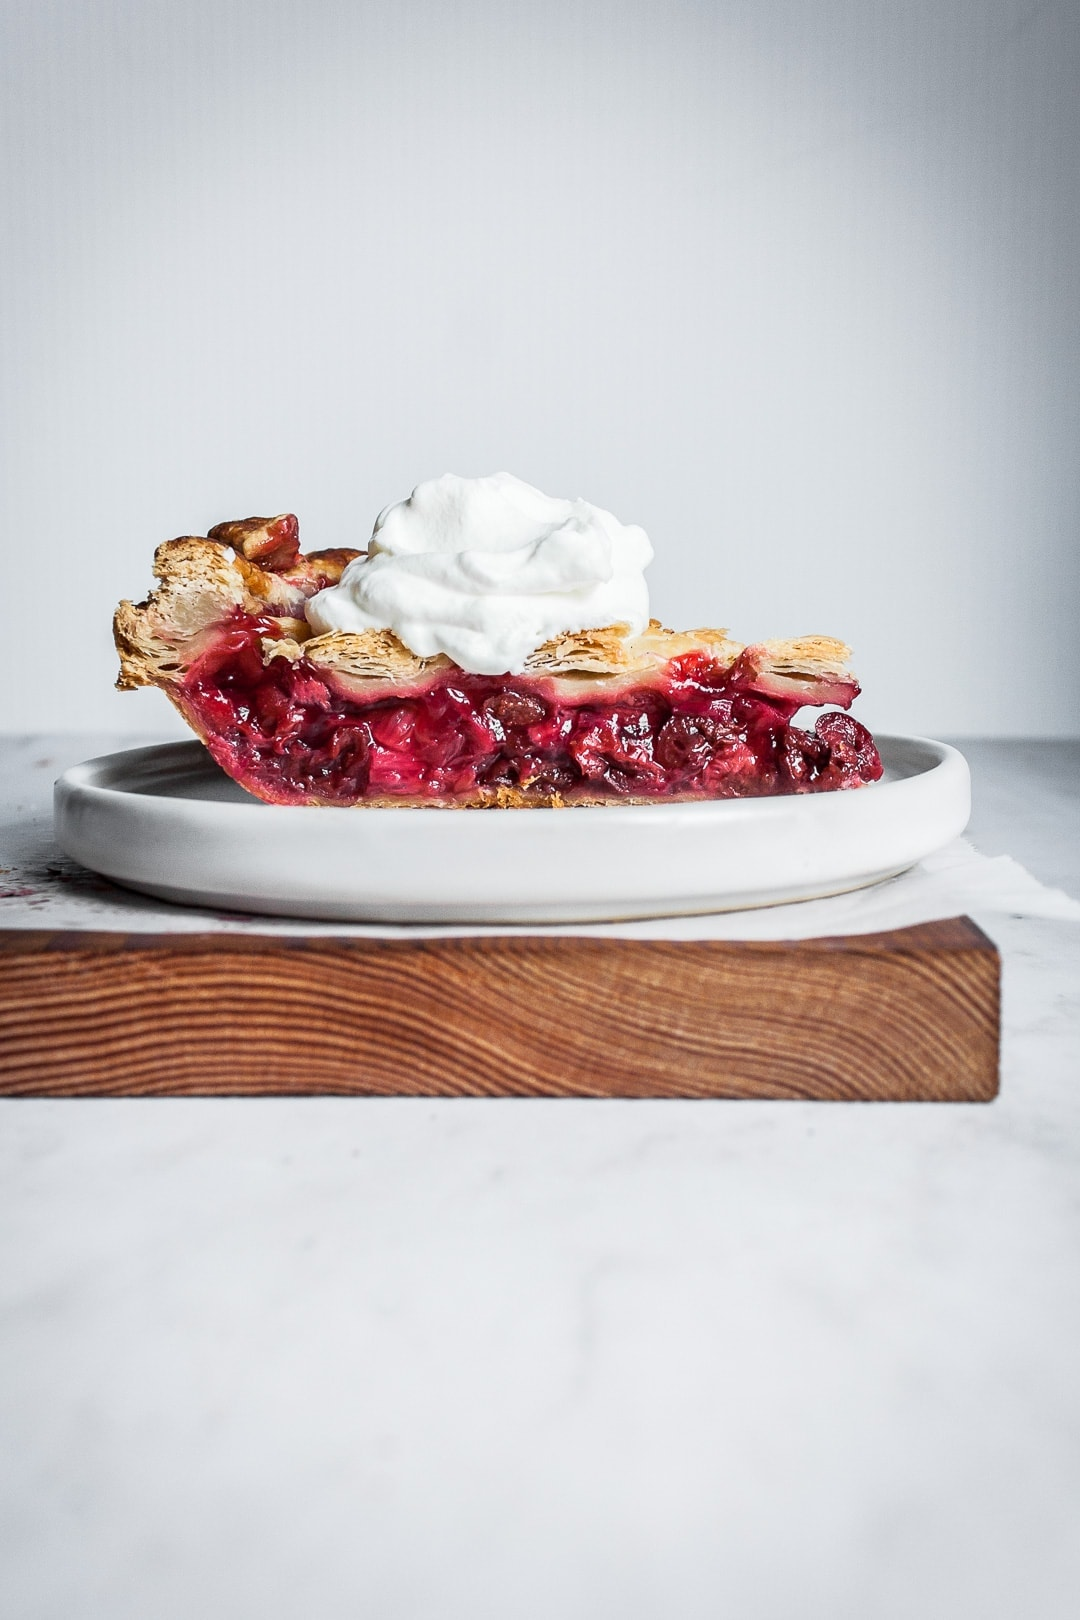 Side view of a slice of cherry rhubarb pie on a white plate with a spoonful of whipped cream on top